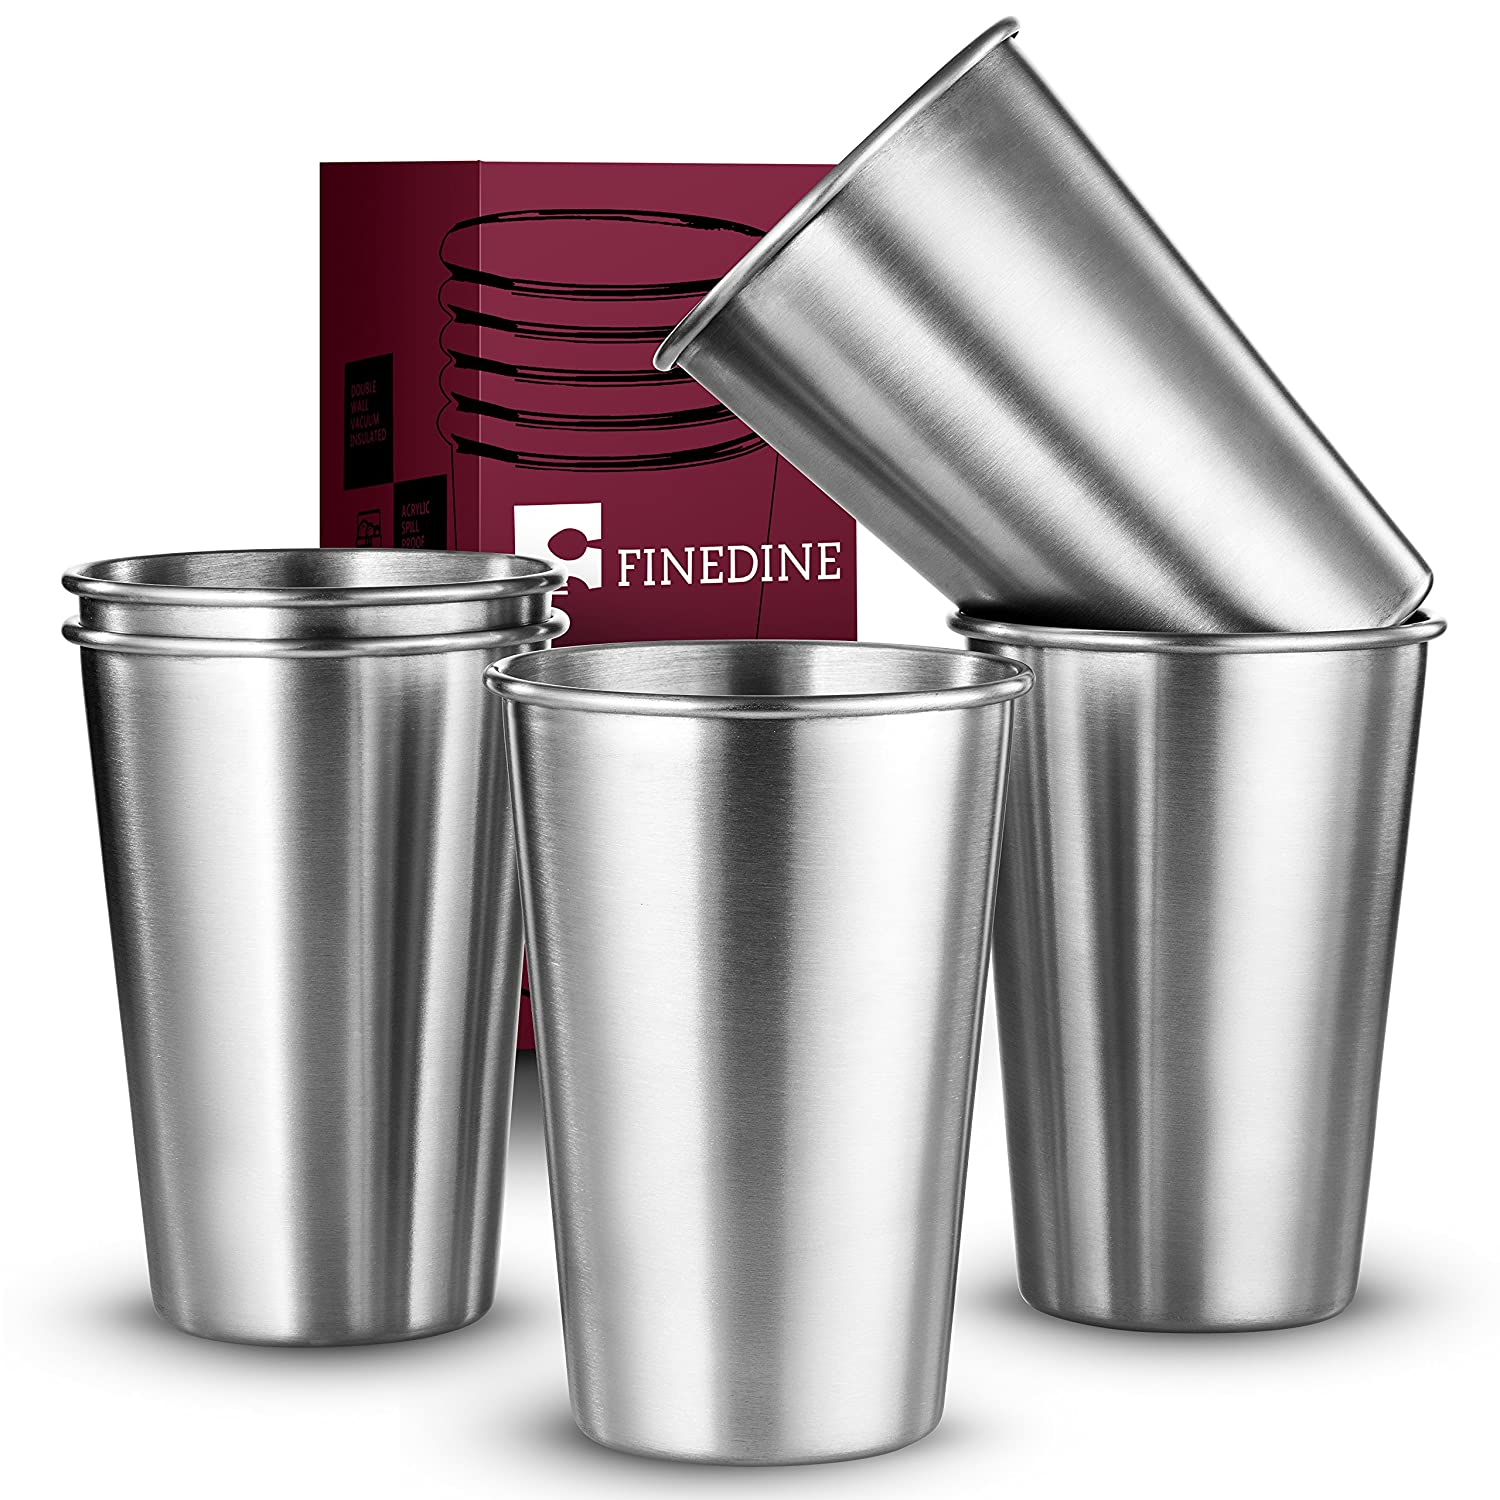 FineDine Premium Grade Stainless Steel Pint Cups Water Tumblers (5 Piece) Unbreakable, Stackable, Brushed Metal Drinking Glasses, Chilling Beer Glasses, for Travel, Outdoor, Camping, Everyday, 16 Oz